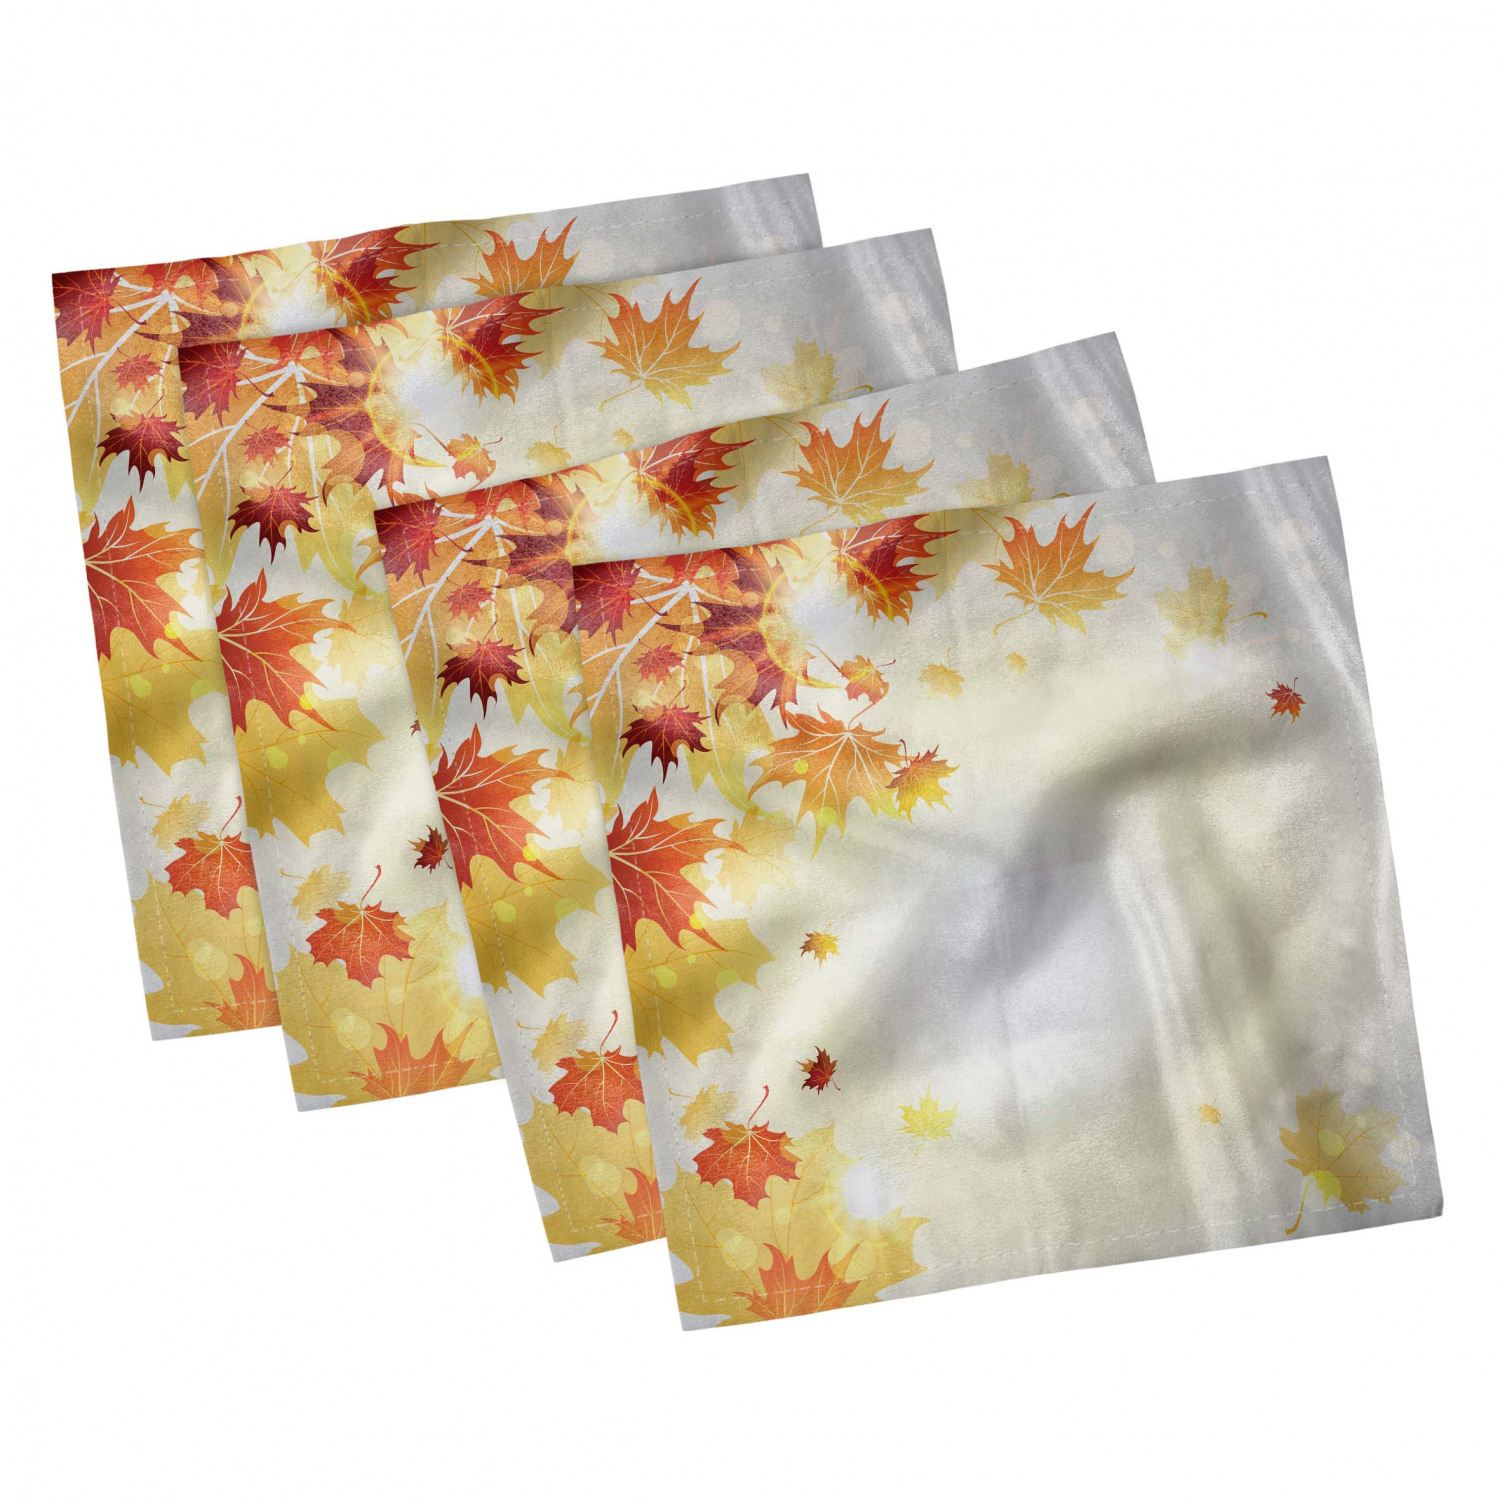 thumbnail 53 - Ambesonne Autumn Fall Decorative Satin Napkins Set of 4 Party Dinner Fabric